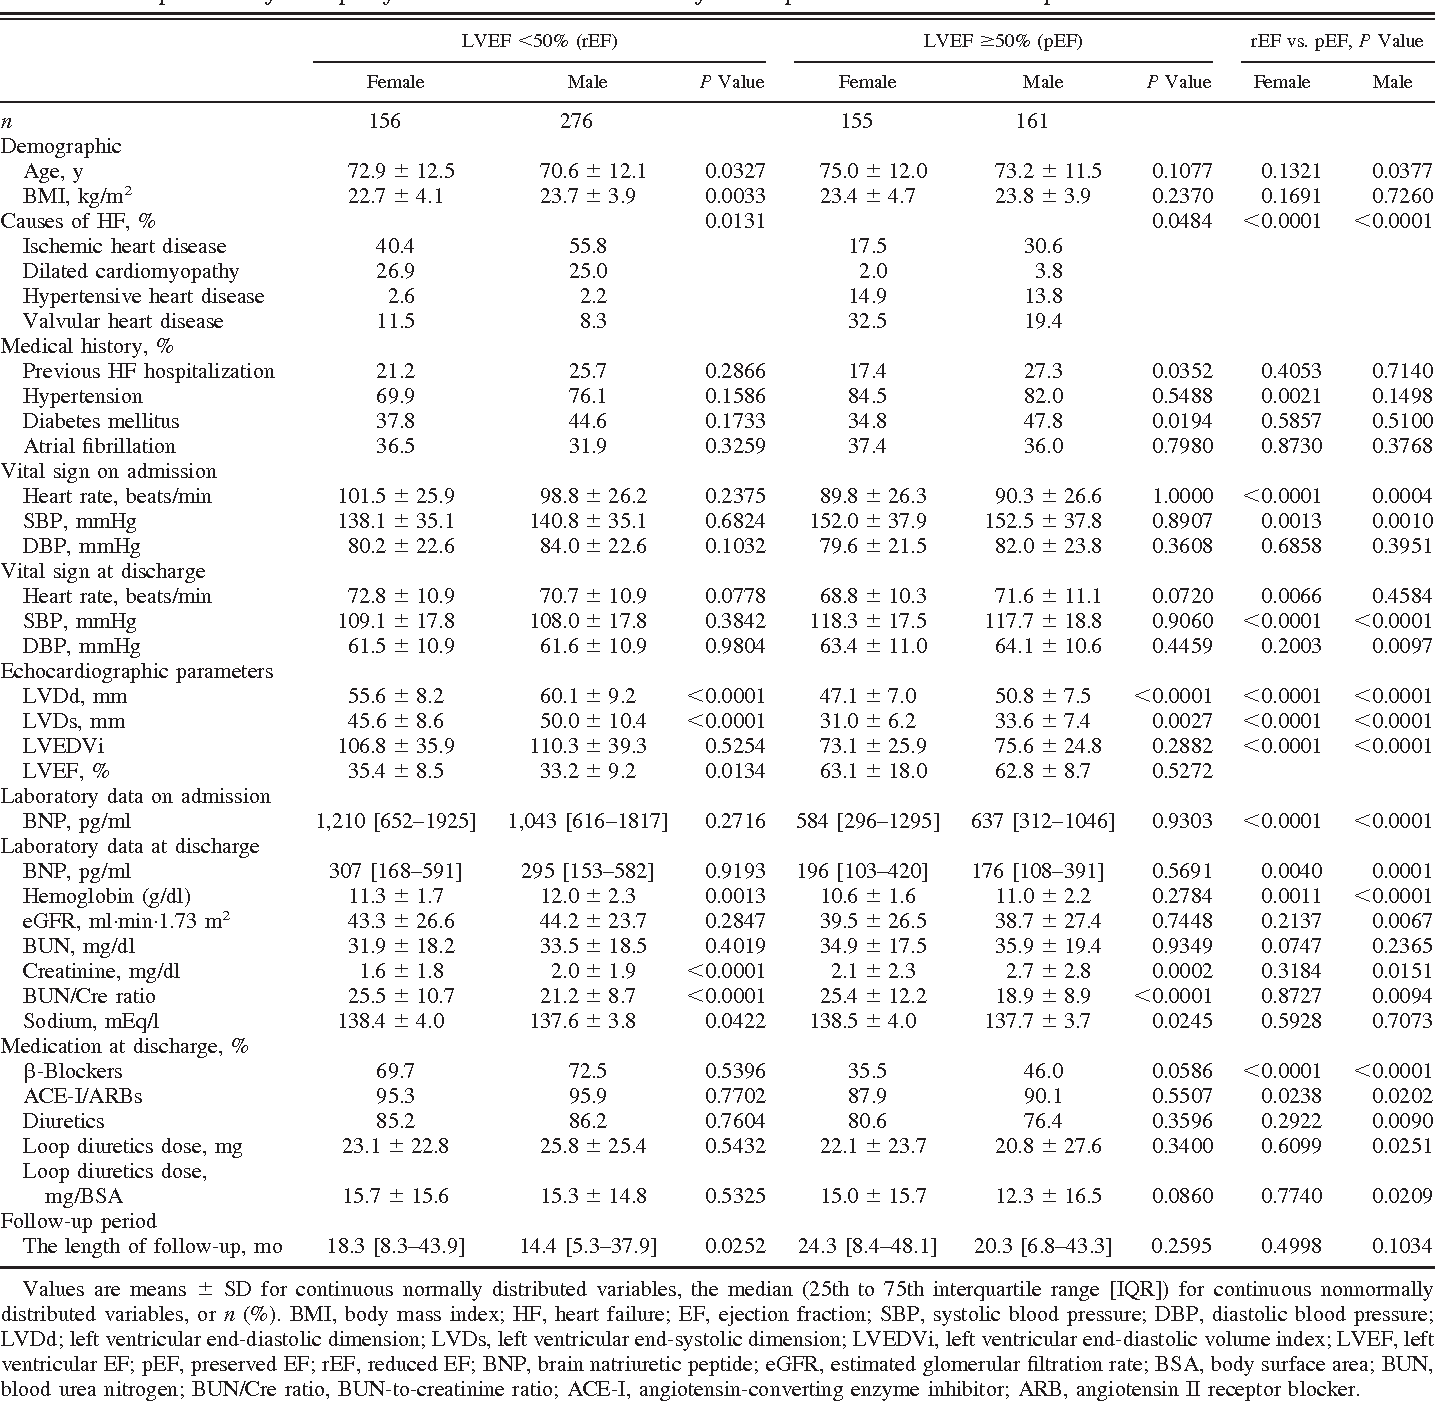 Table 1. Comparison of sex-specific baseline characteristics for HF patients with rEF and pEF